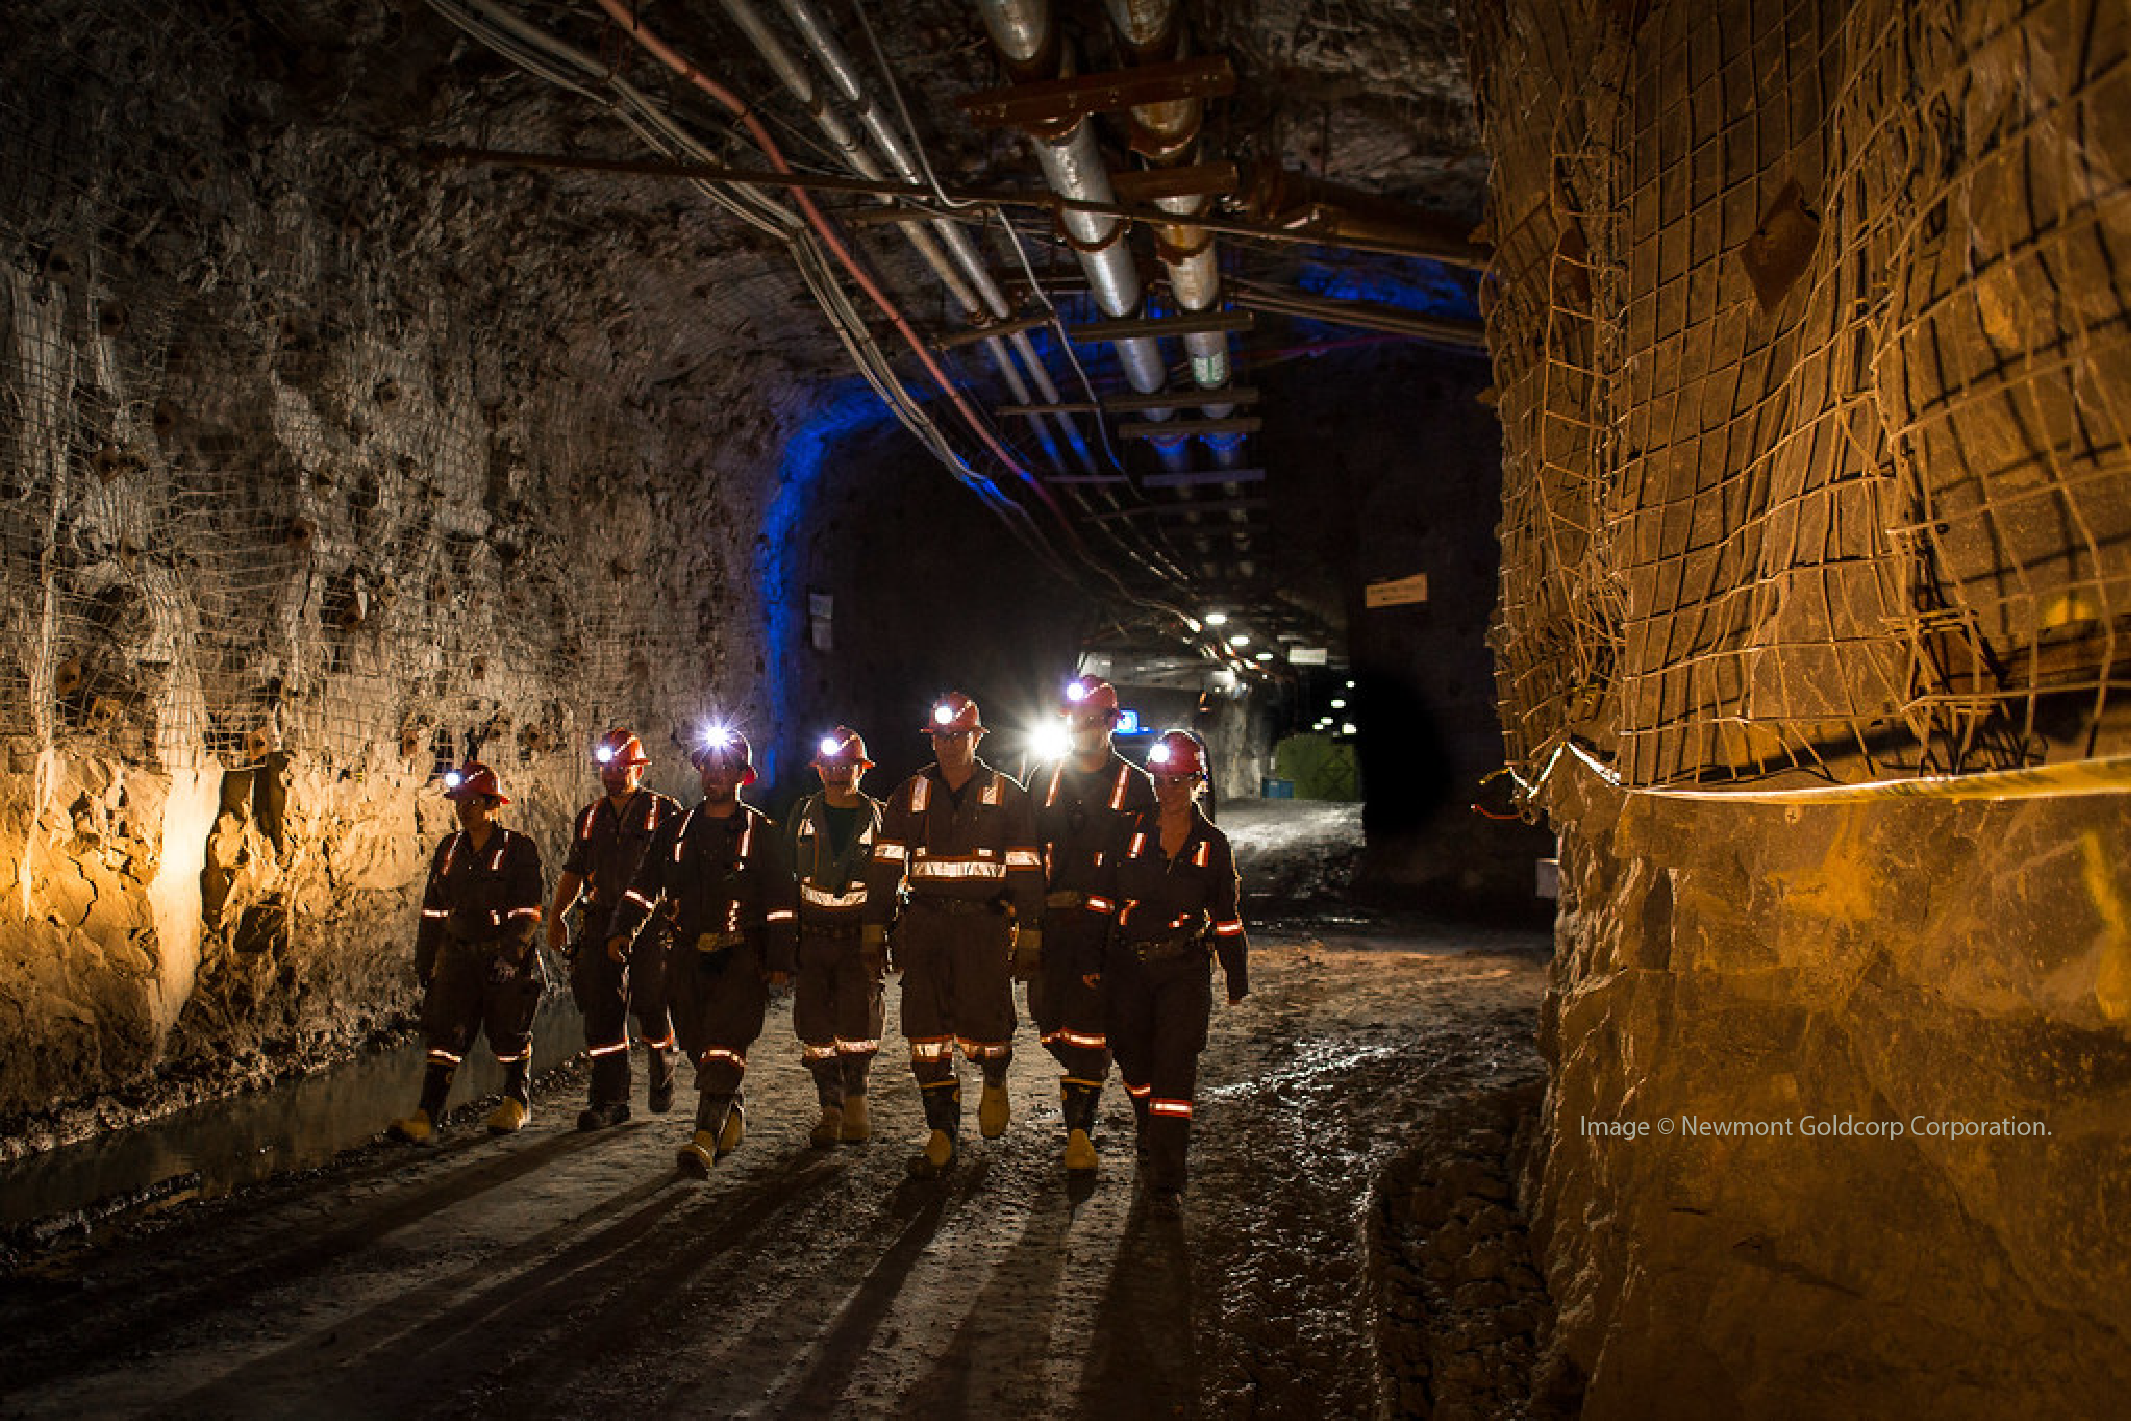 Mining, Resources, Underground Mining